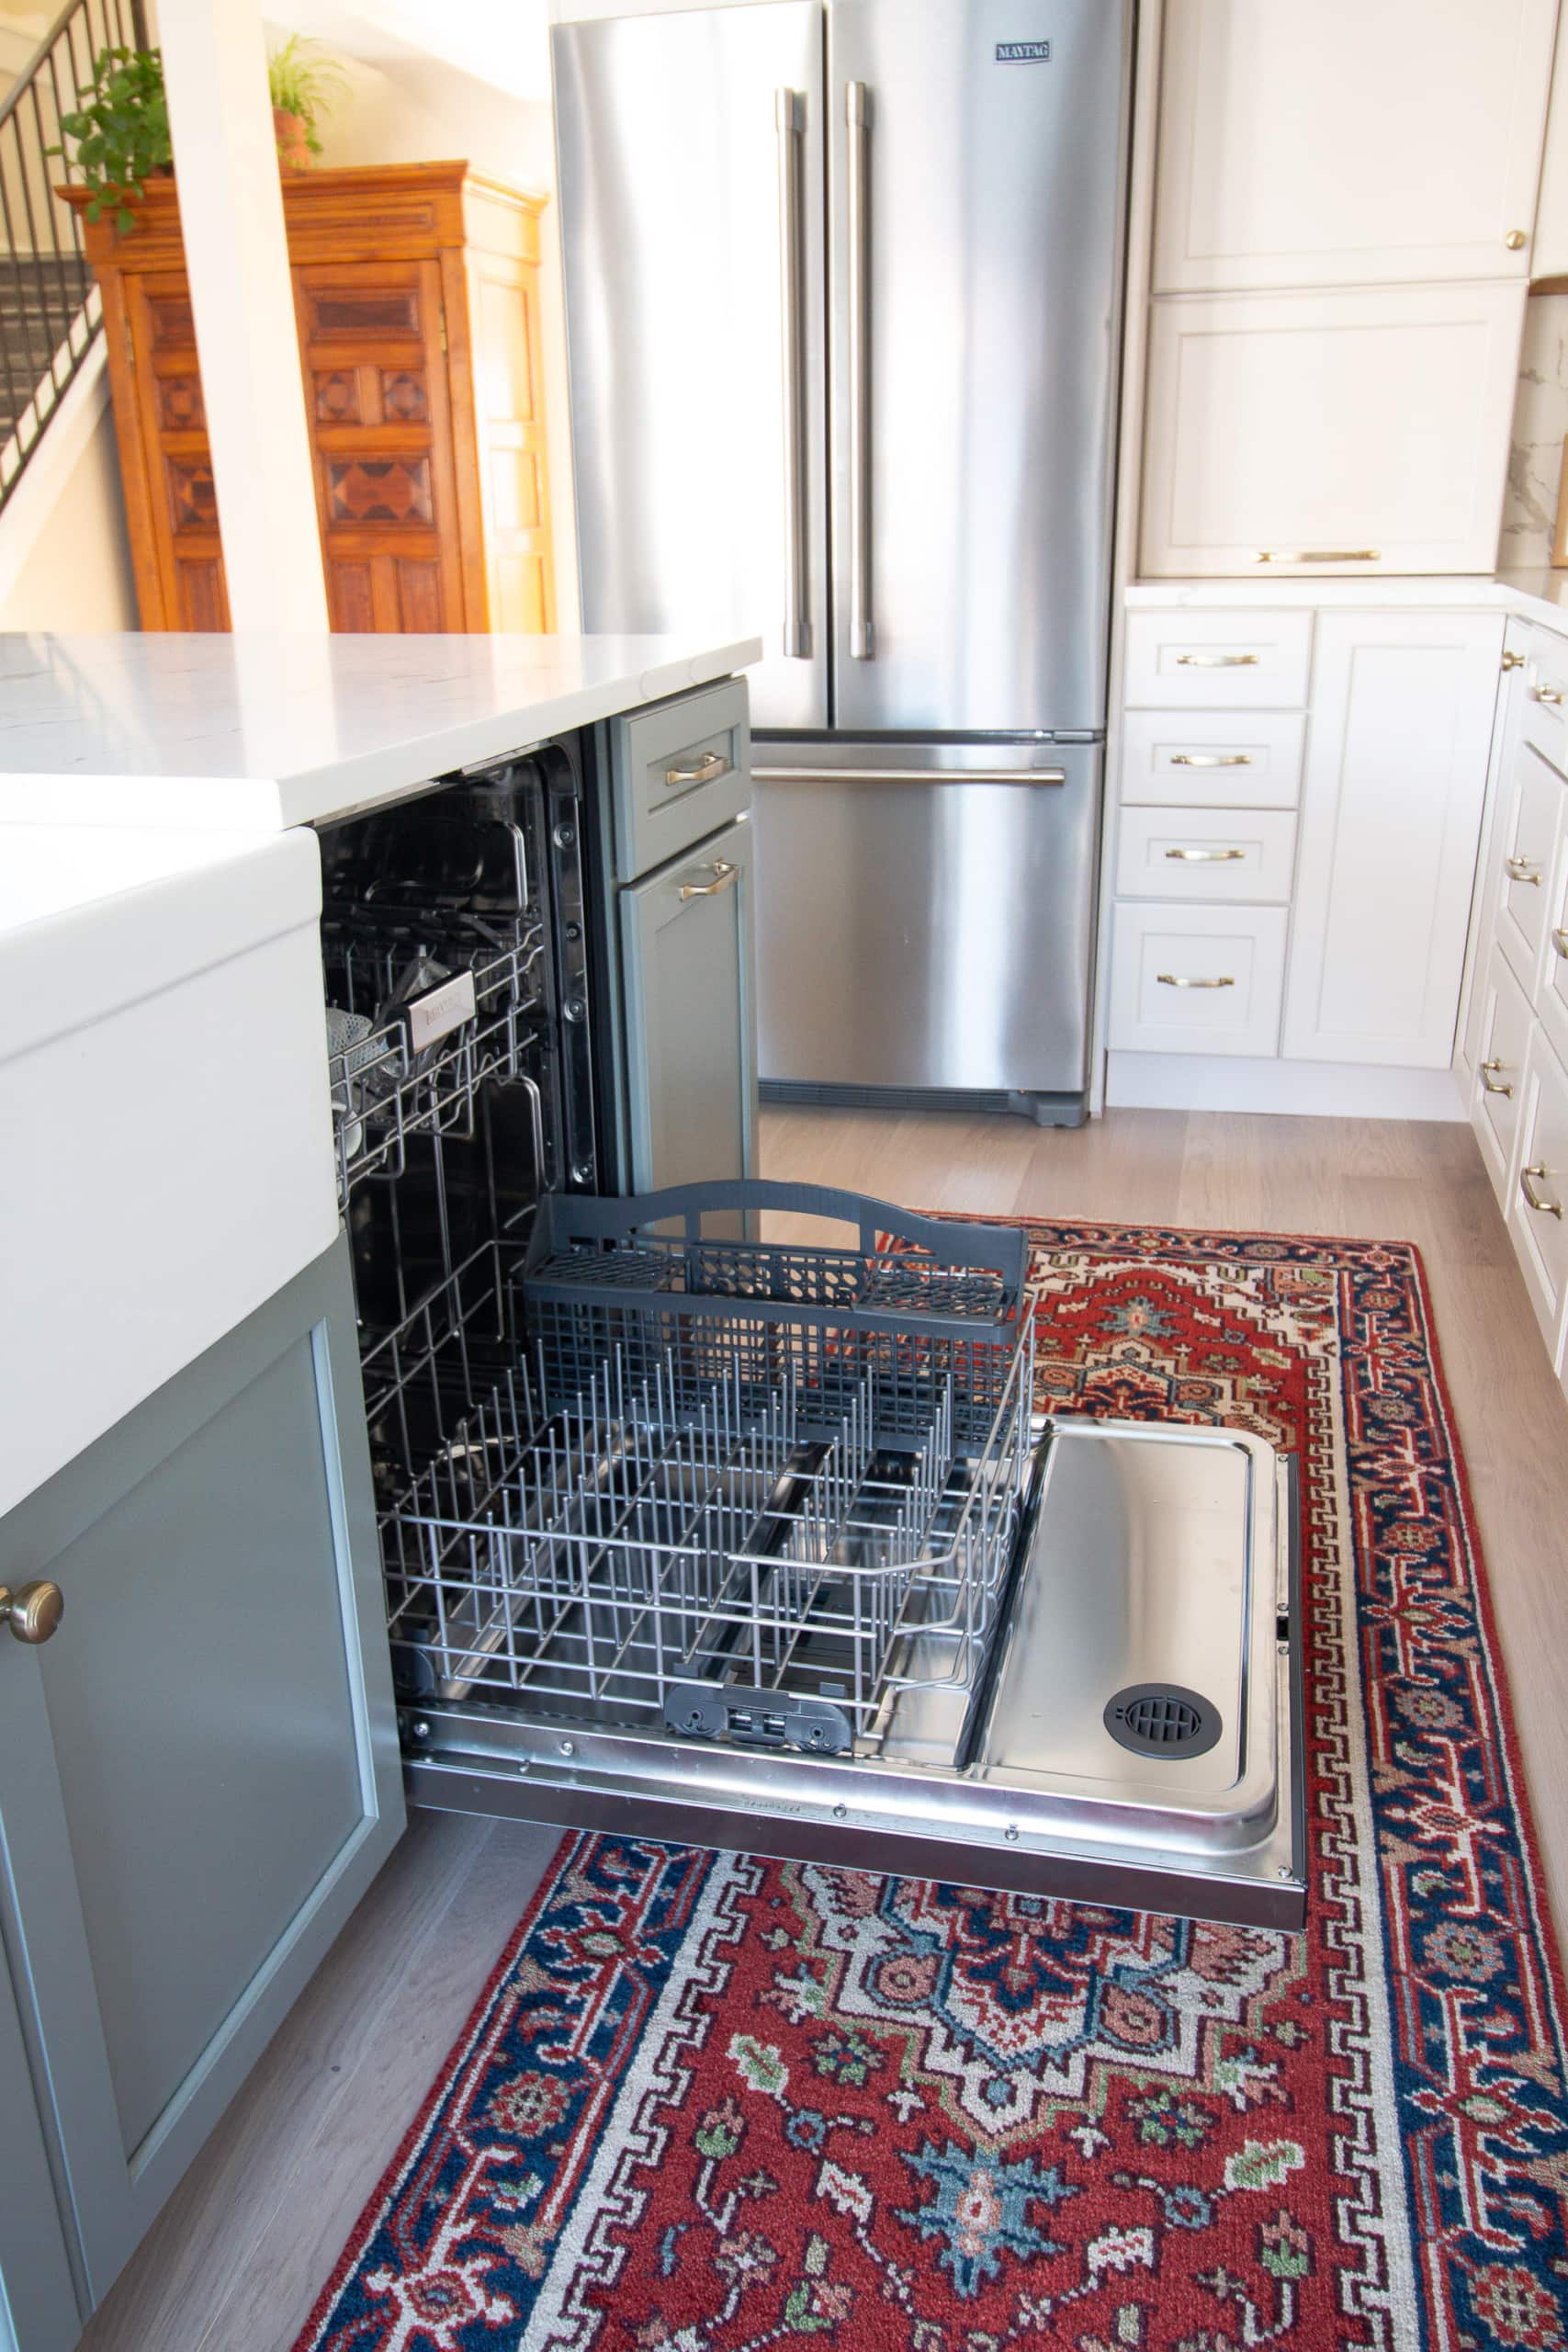 Our new kitchen appliances include a dishwasher from Maytag